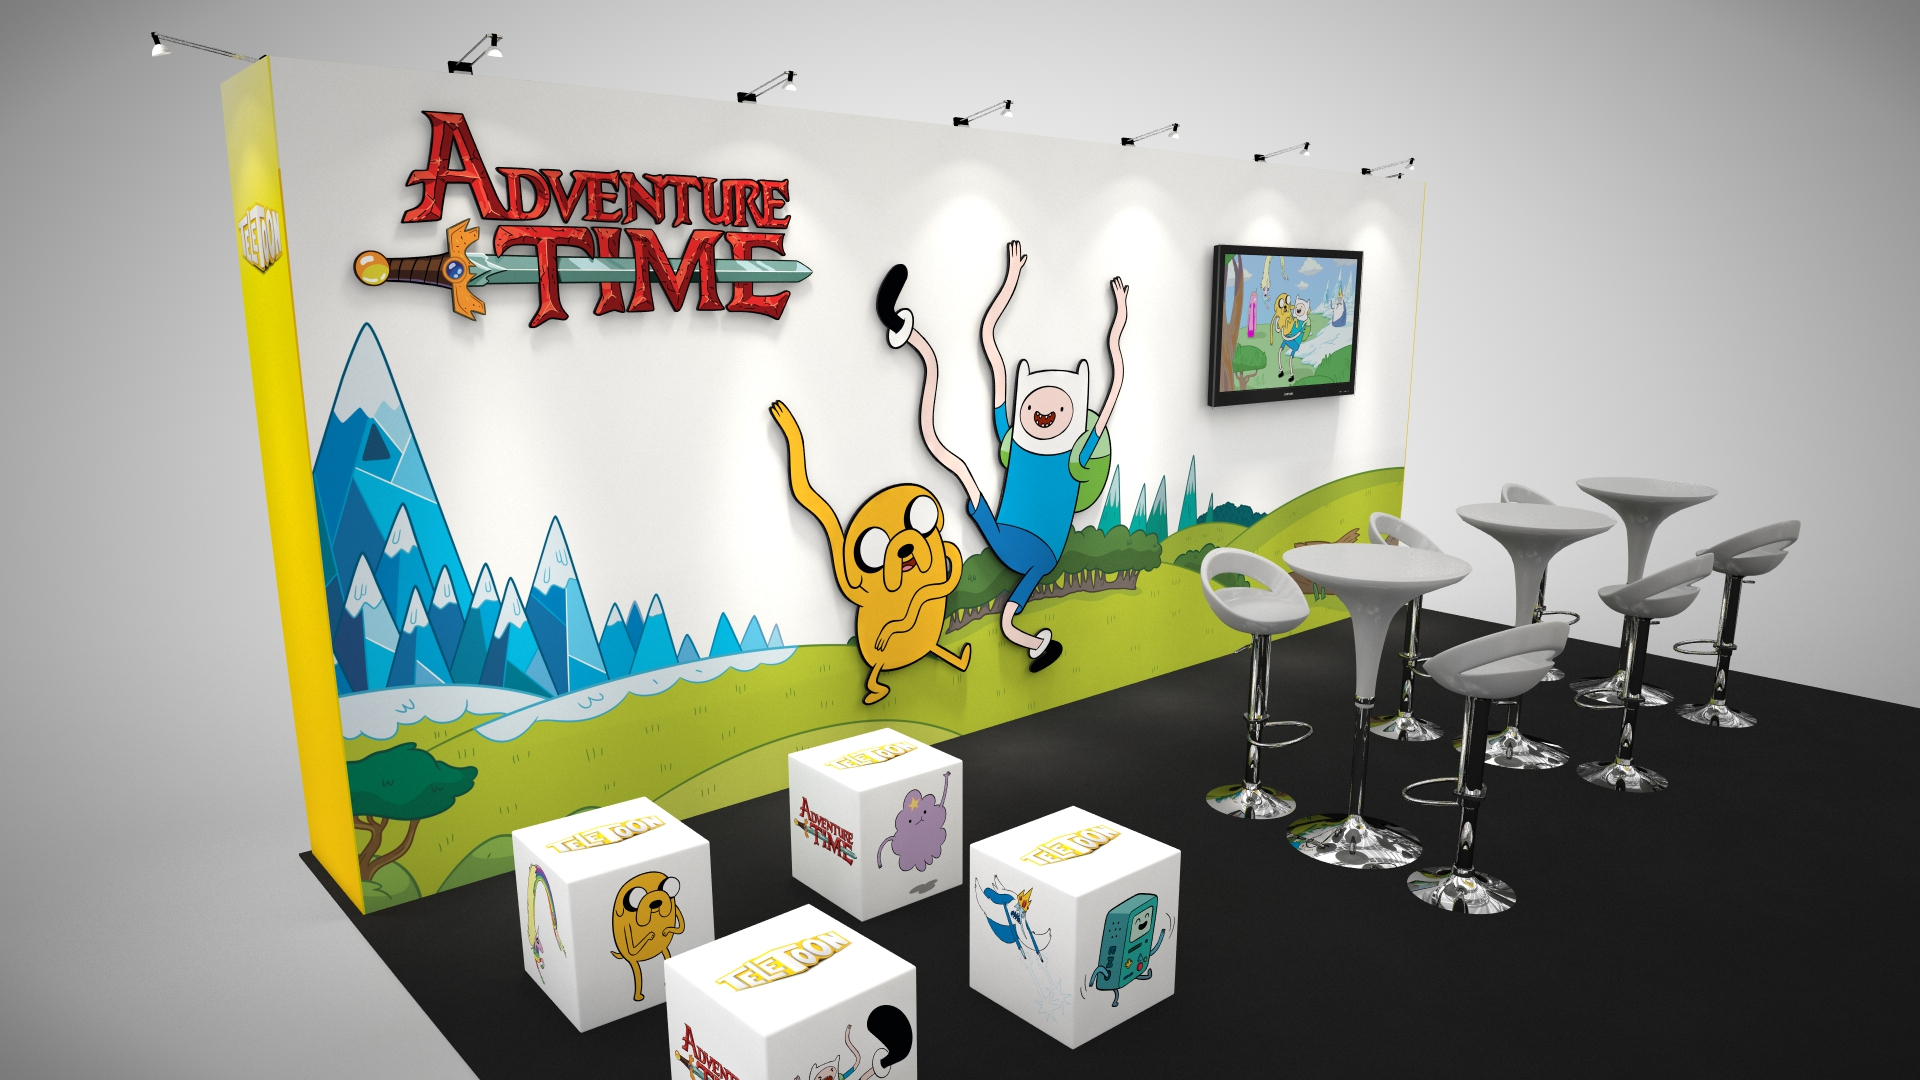 A media and presentation area within TeleToon's trade show rental booth at ComiCon show in Toronto, Canada